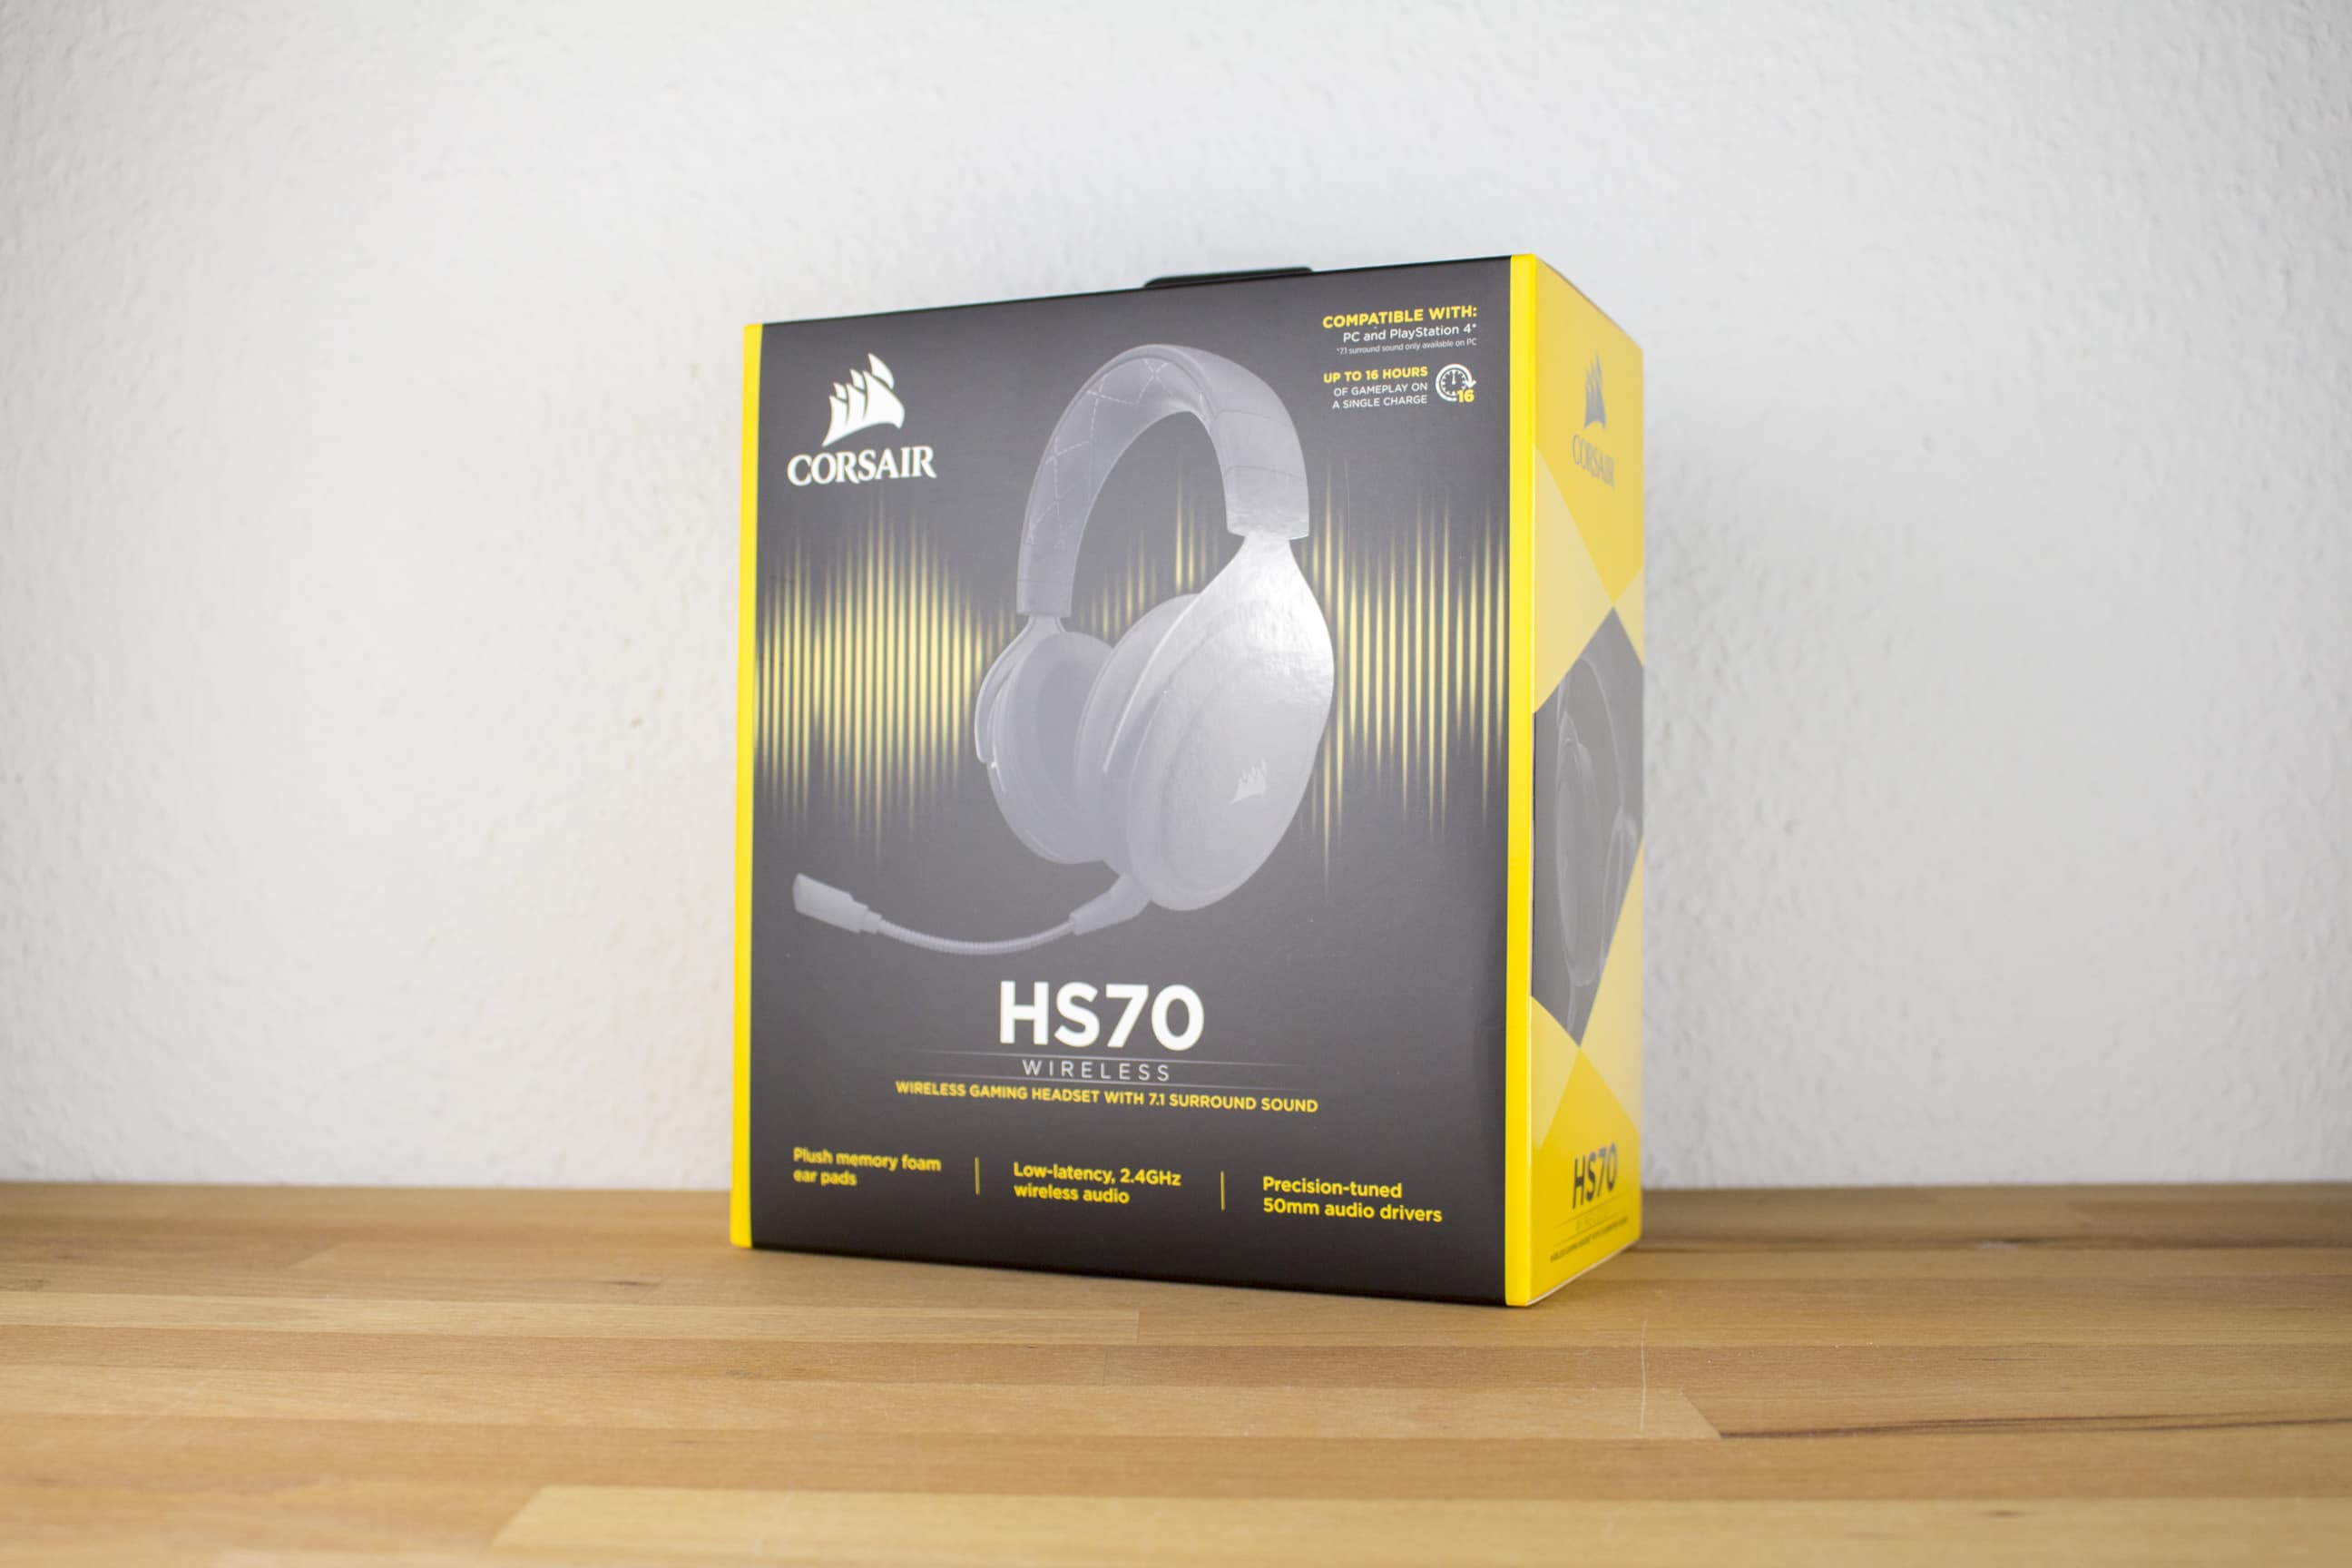 Corsair Hs70 Wireless Gaming Headset For Pc Ps4 Reviewed